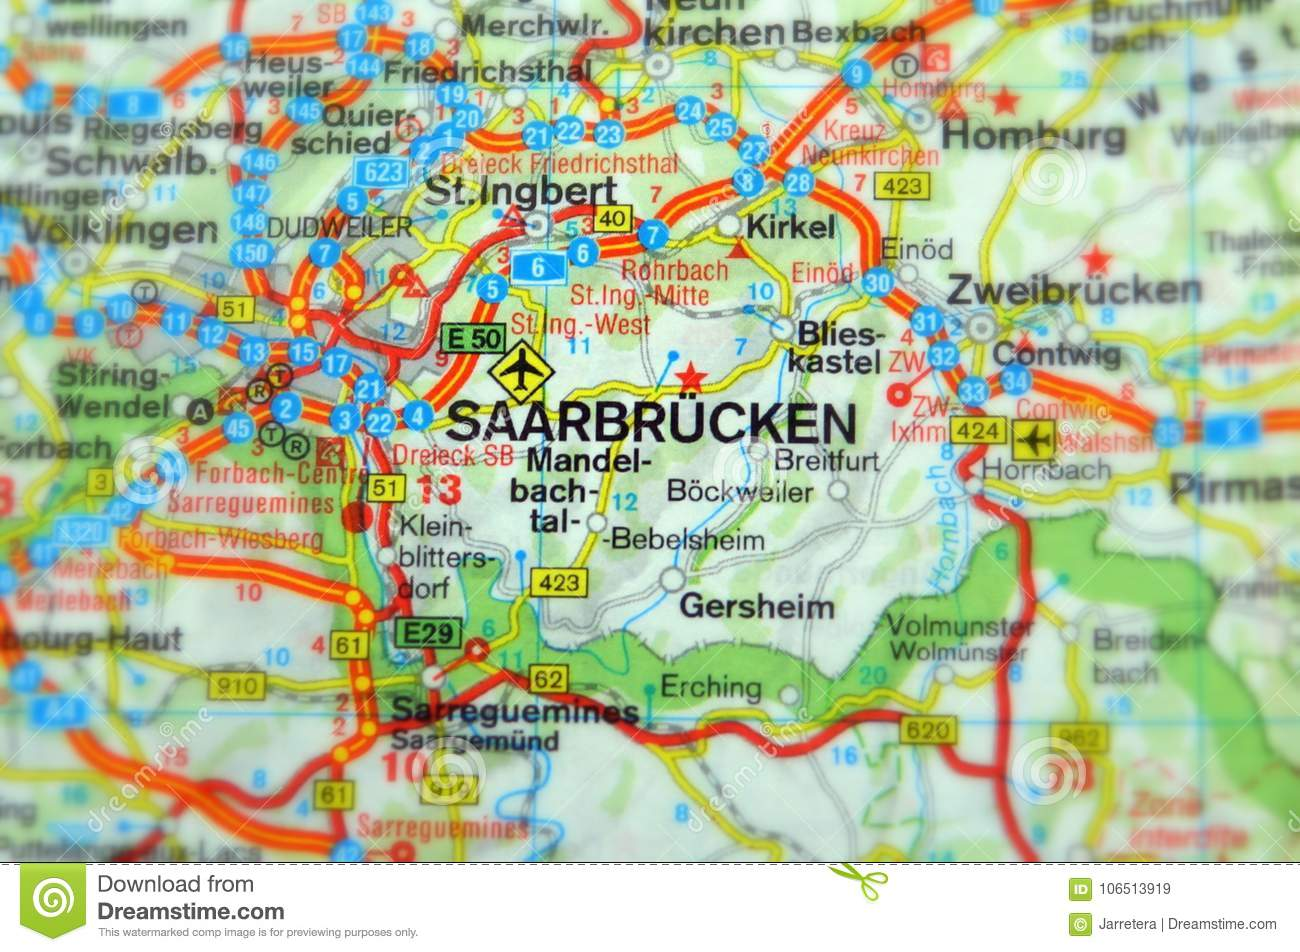 Saarbrucken Germany Map.Saarbrucken Germany Europe Stock Image Image Of Geography